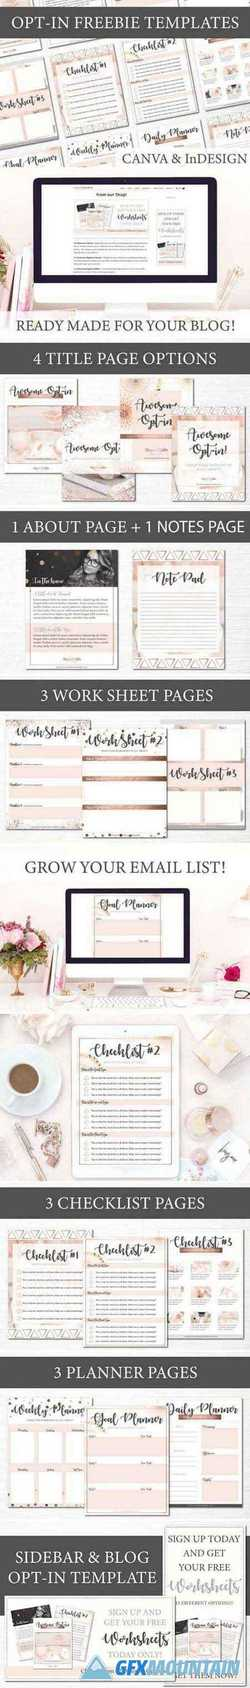 Opt-in Freebie Templates - Rose Gold 2405418